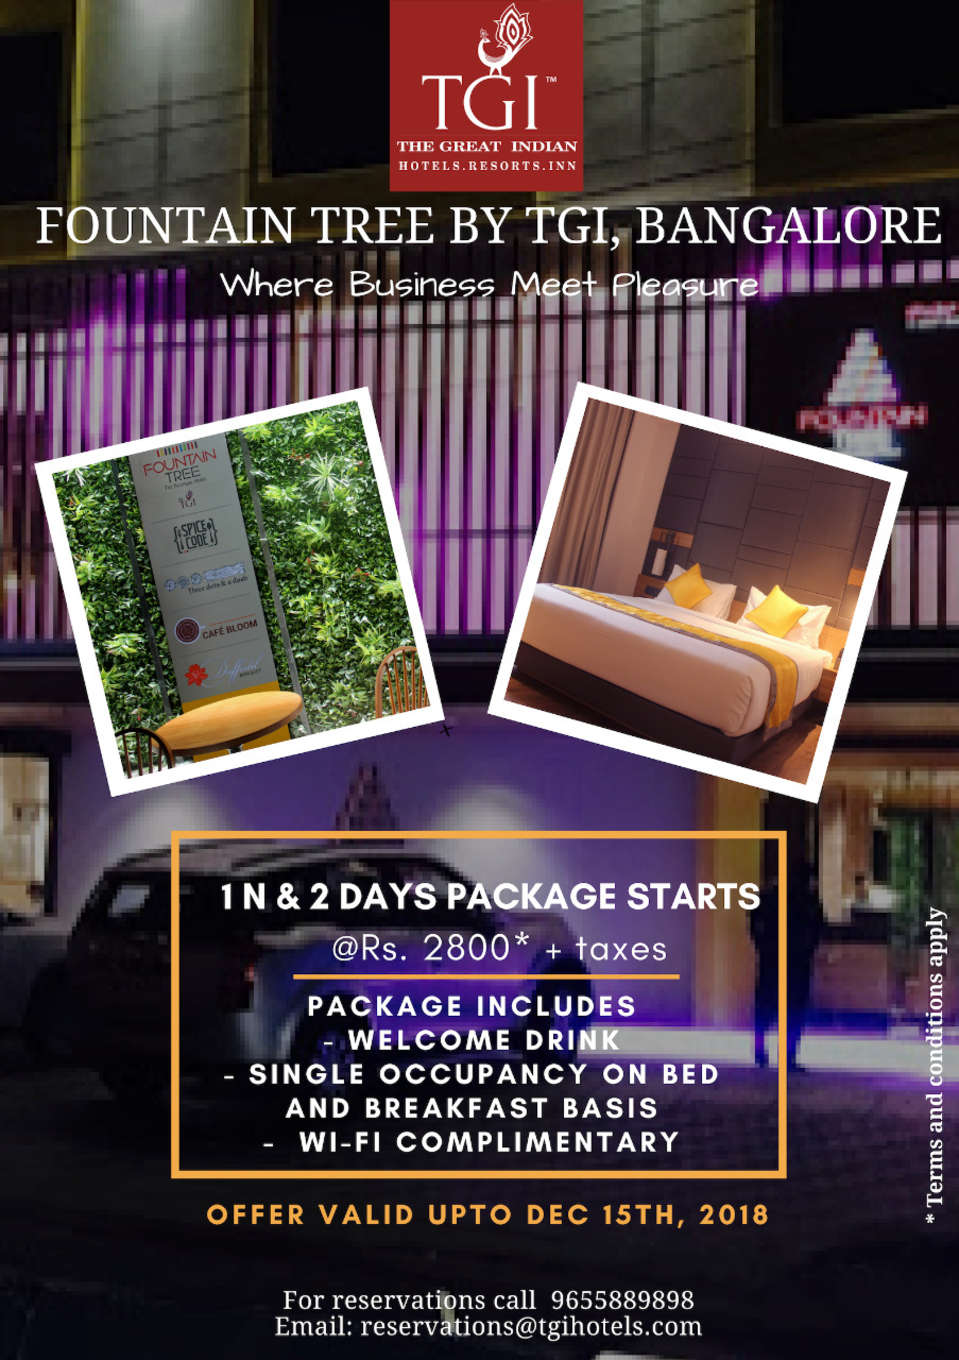 Offer at Hotel Fountain Tree by TGI - JP Nagar Bangalore